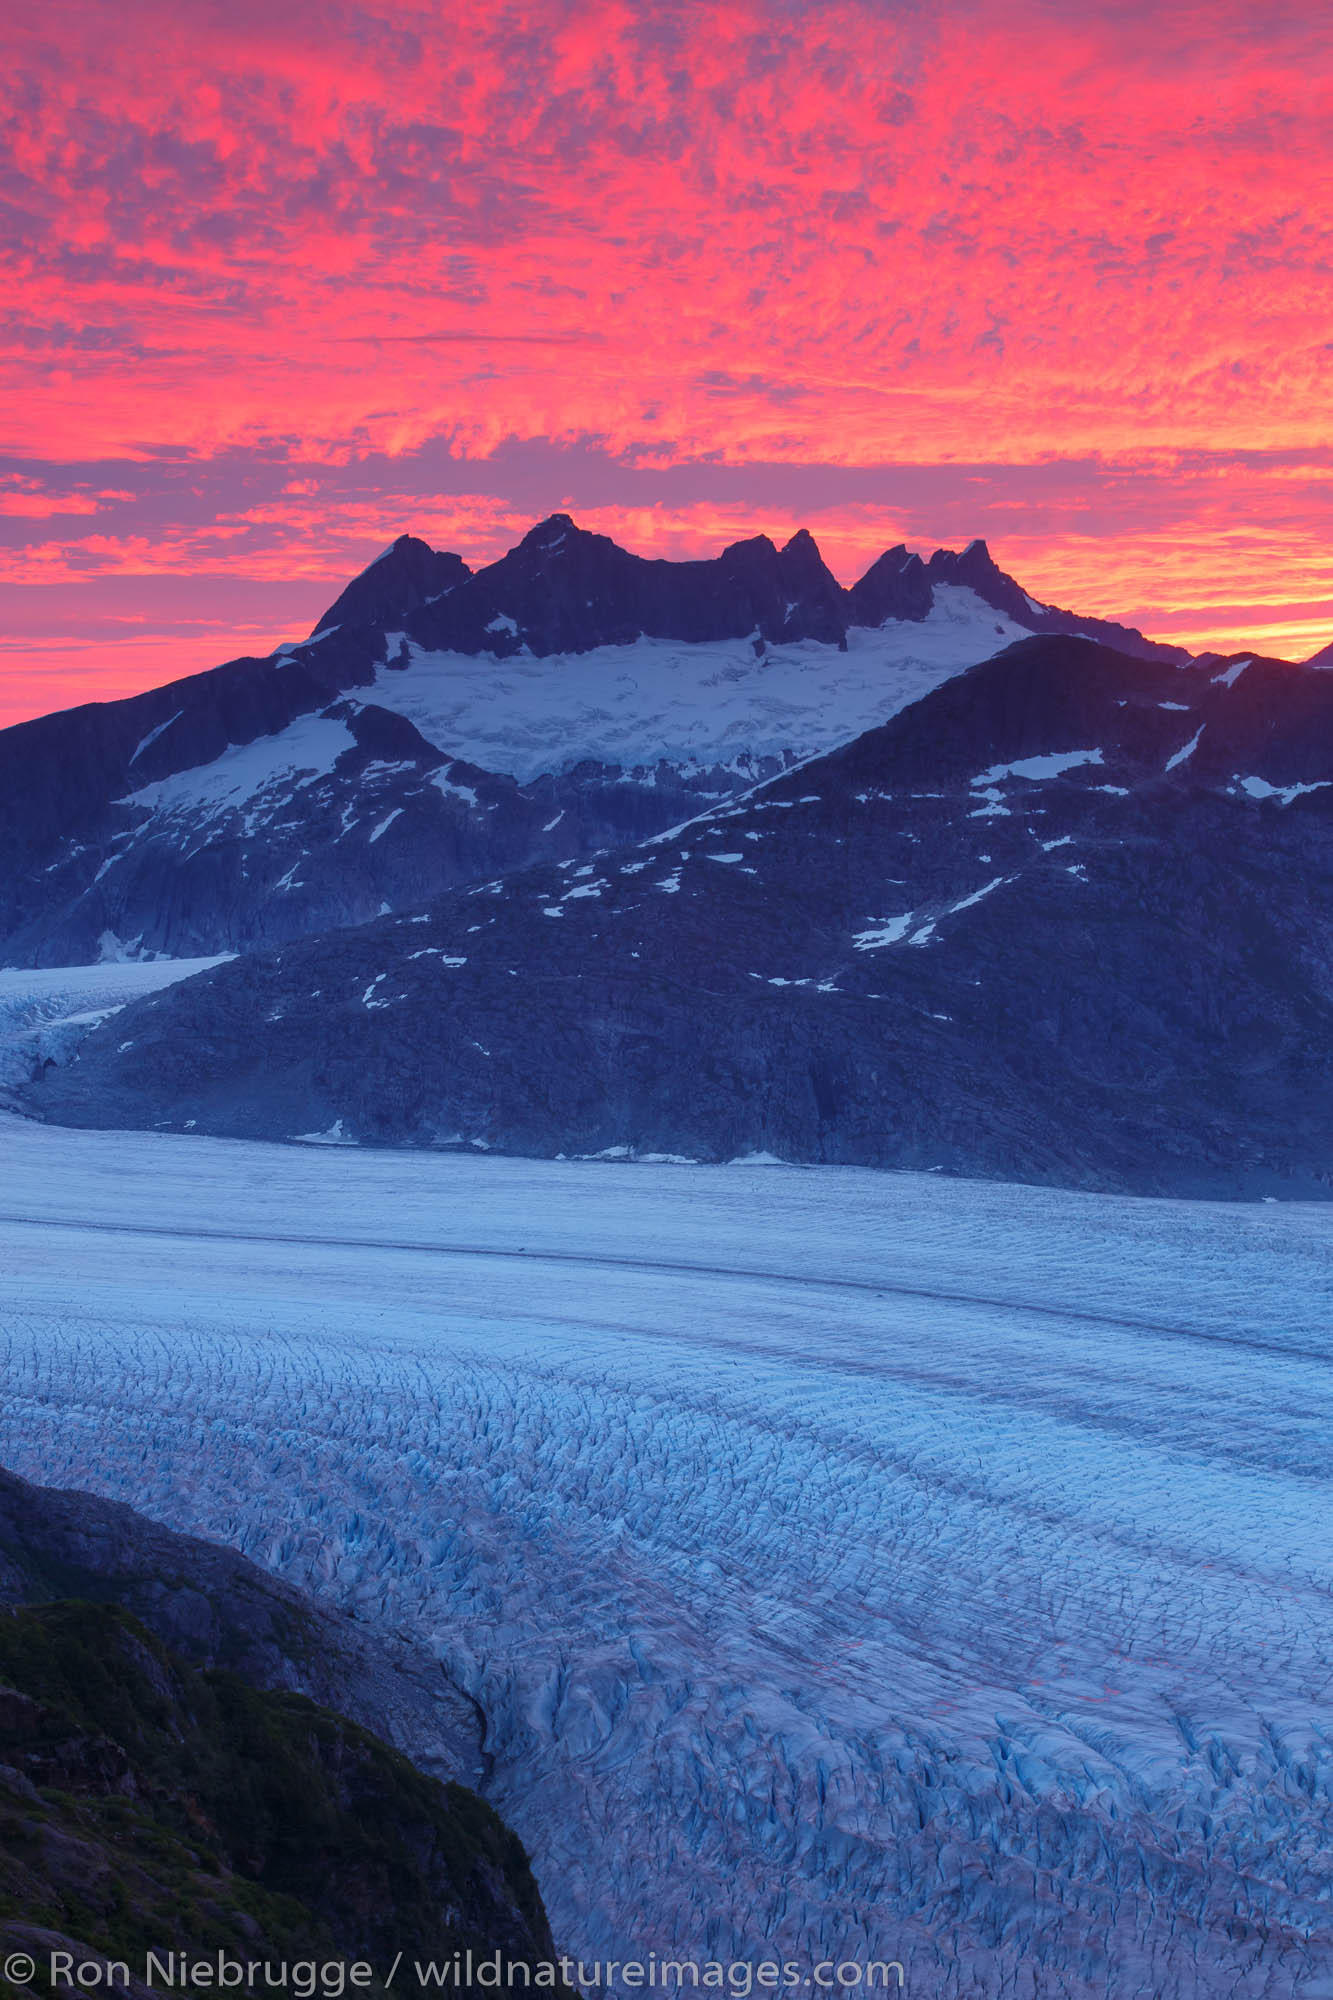 Sunrise From Mount Stroller White above the Mendenhall Glacier, Tongass National Forest, Alaska.